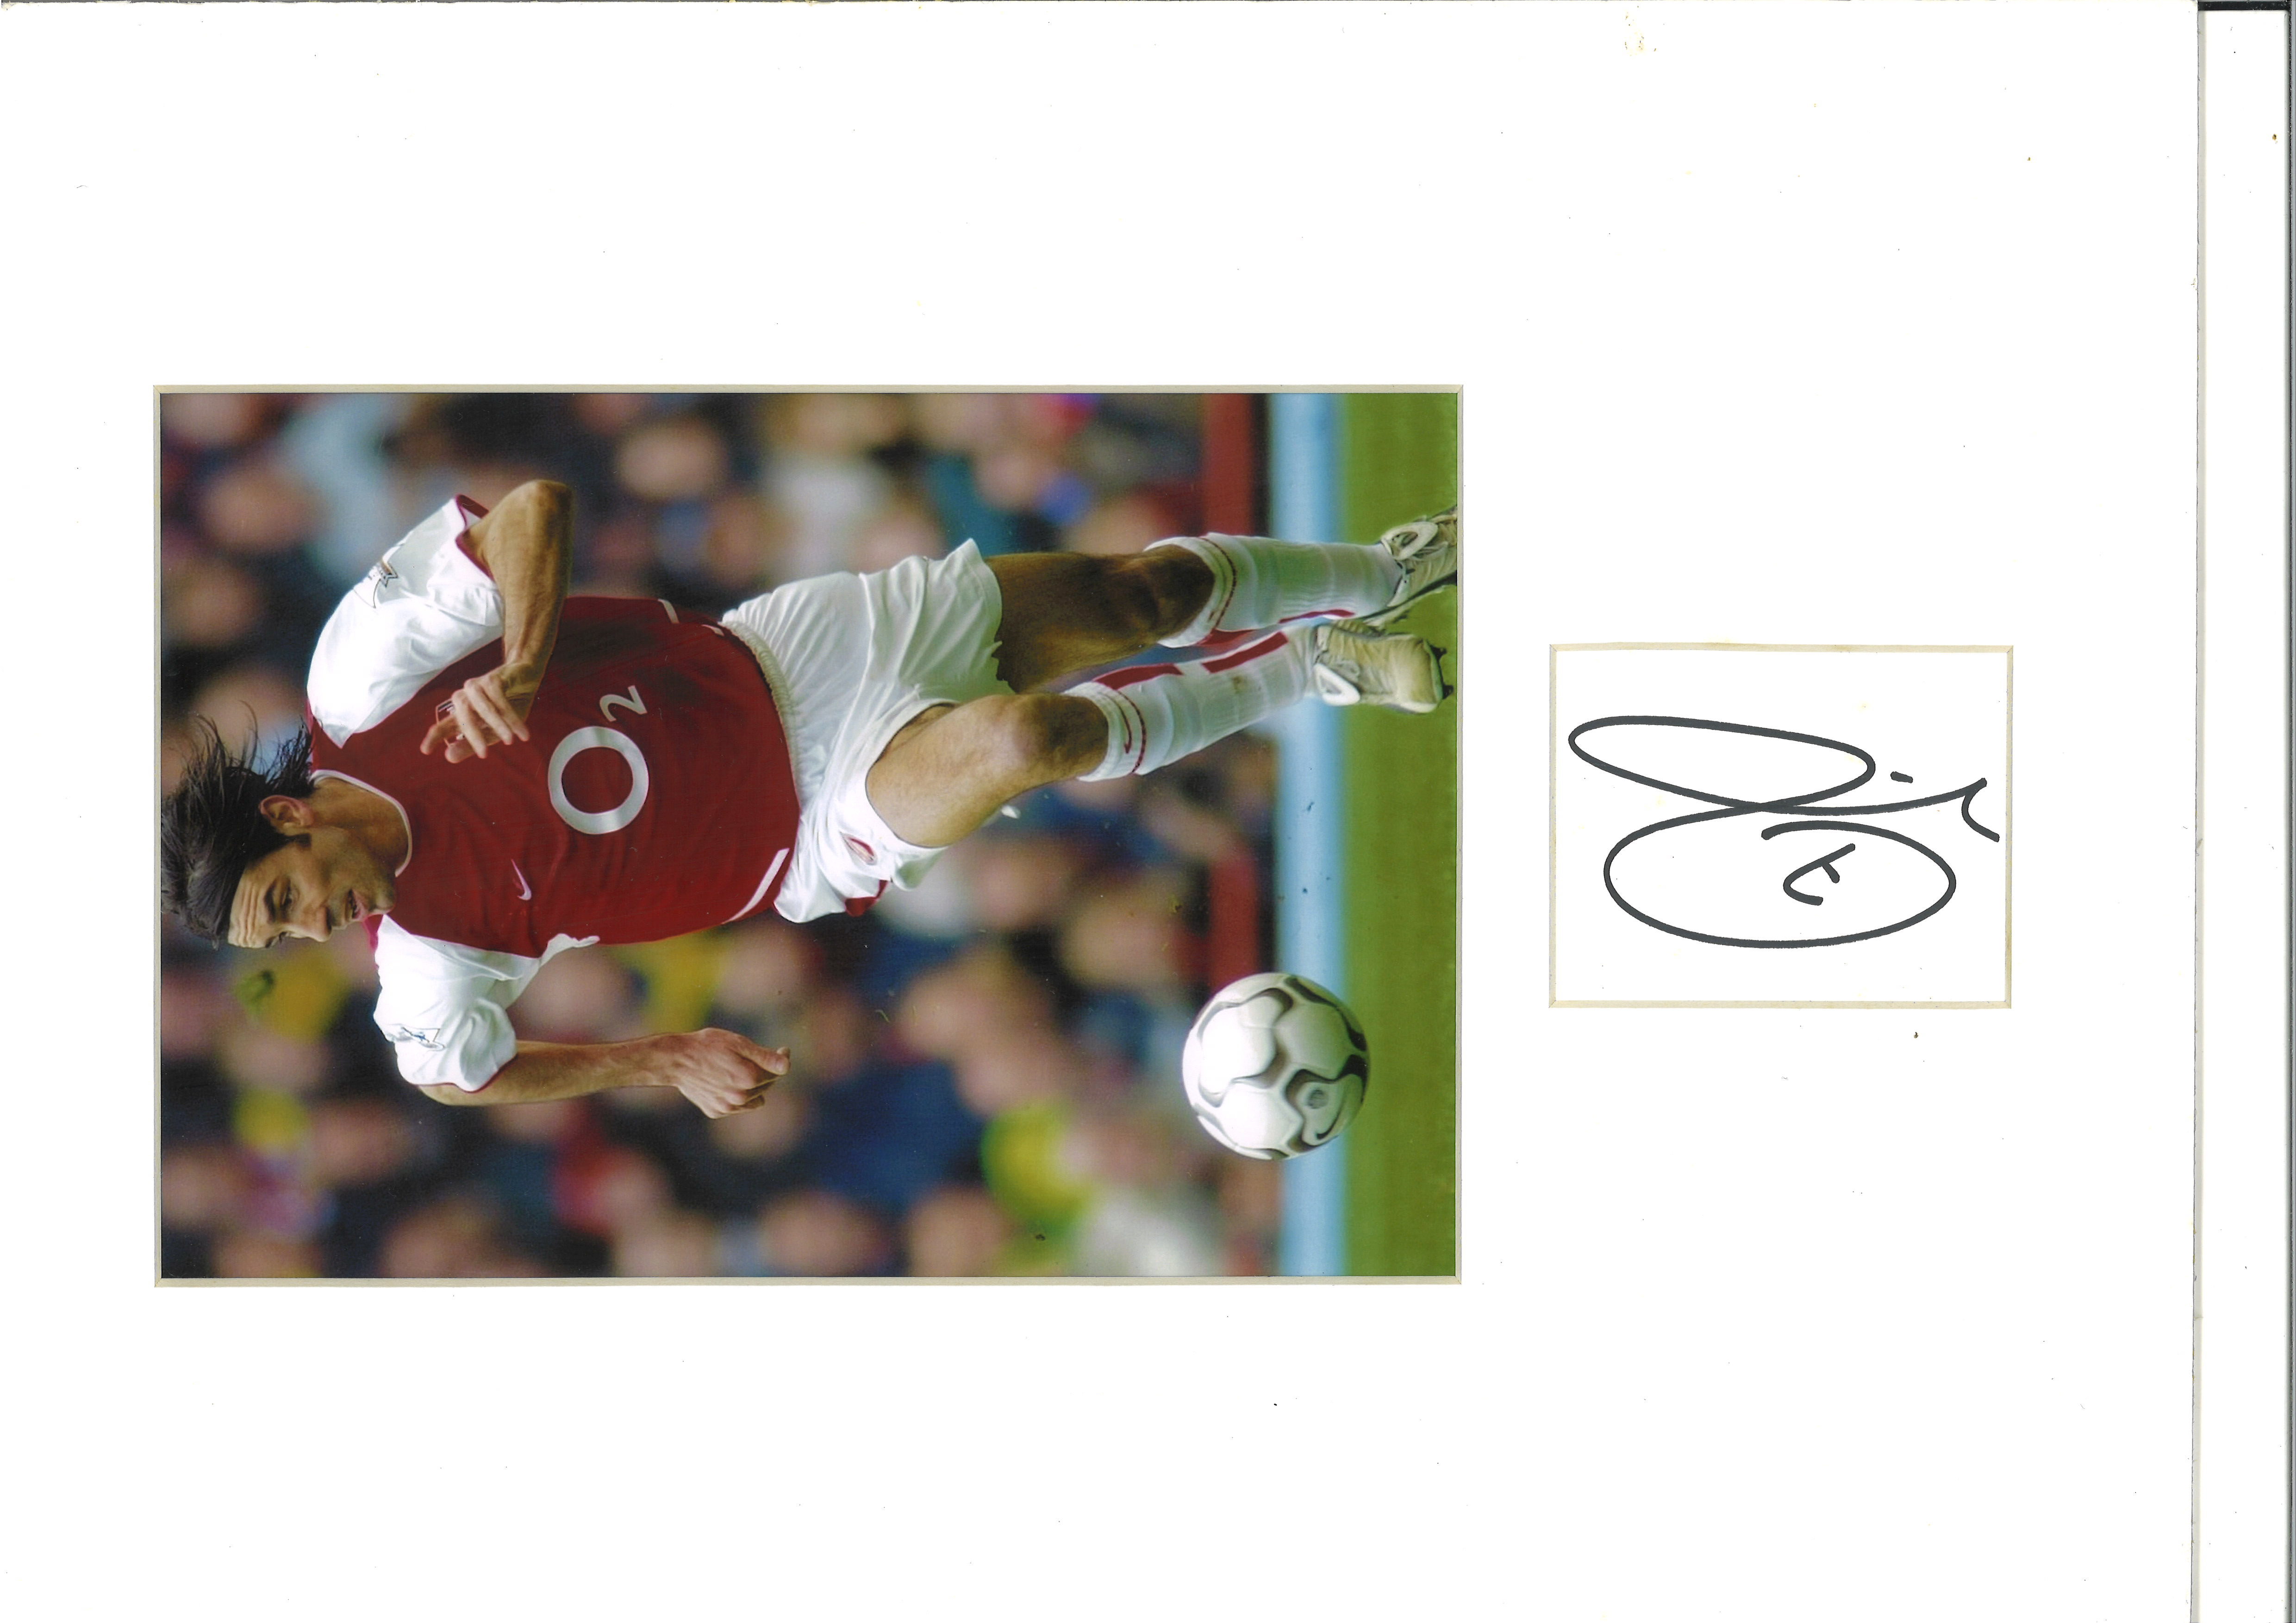 Robert Pires Signed Card In 12x16 Mounted Arsenal Photo. Good Condition. All autographs are